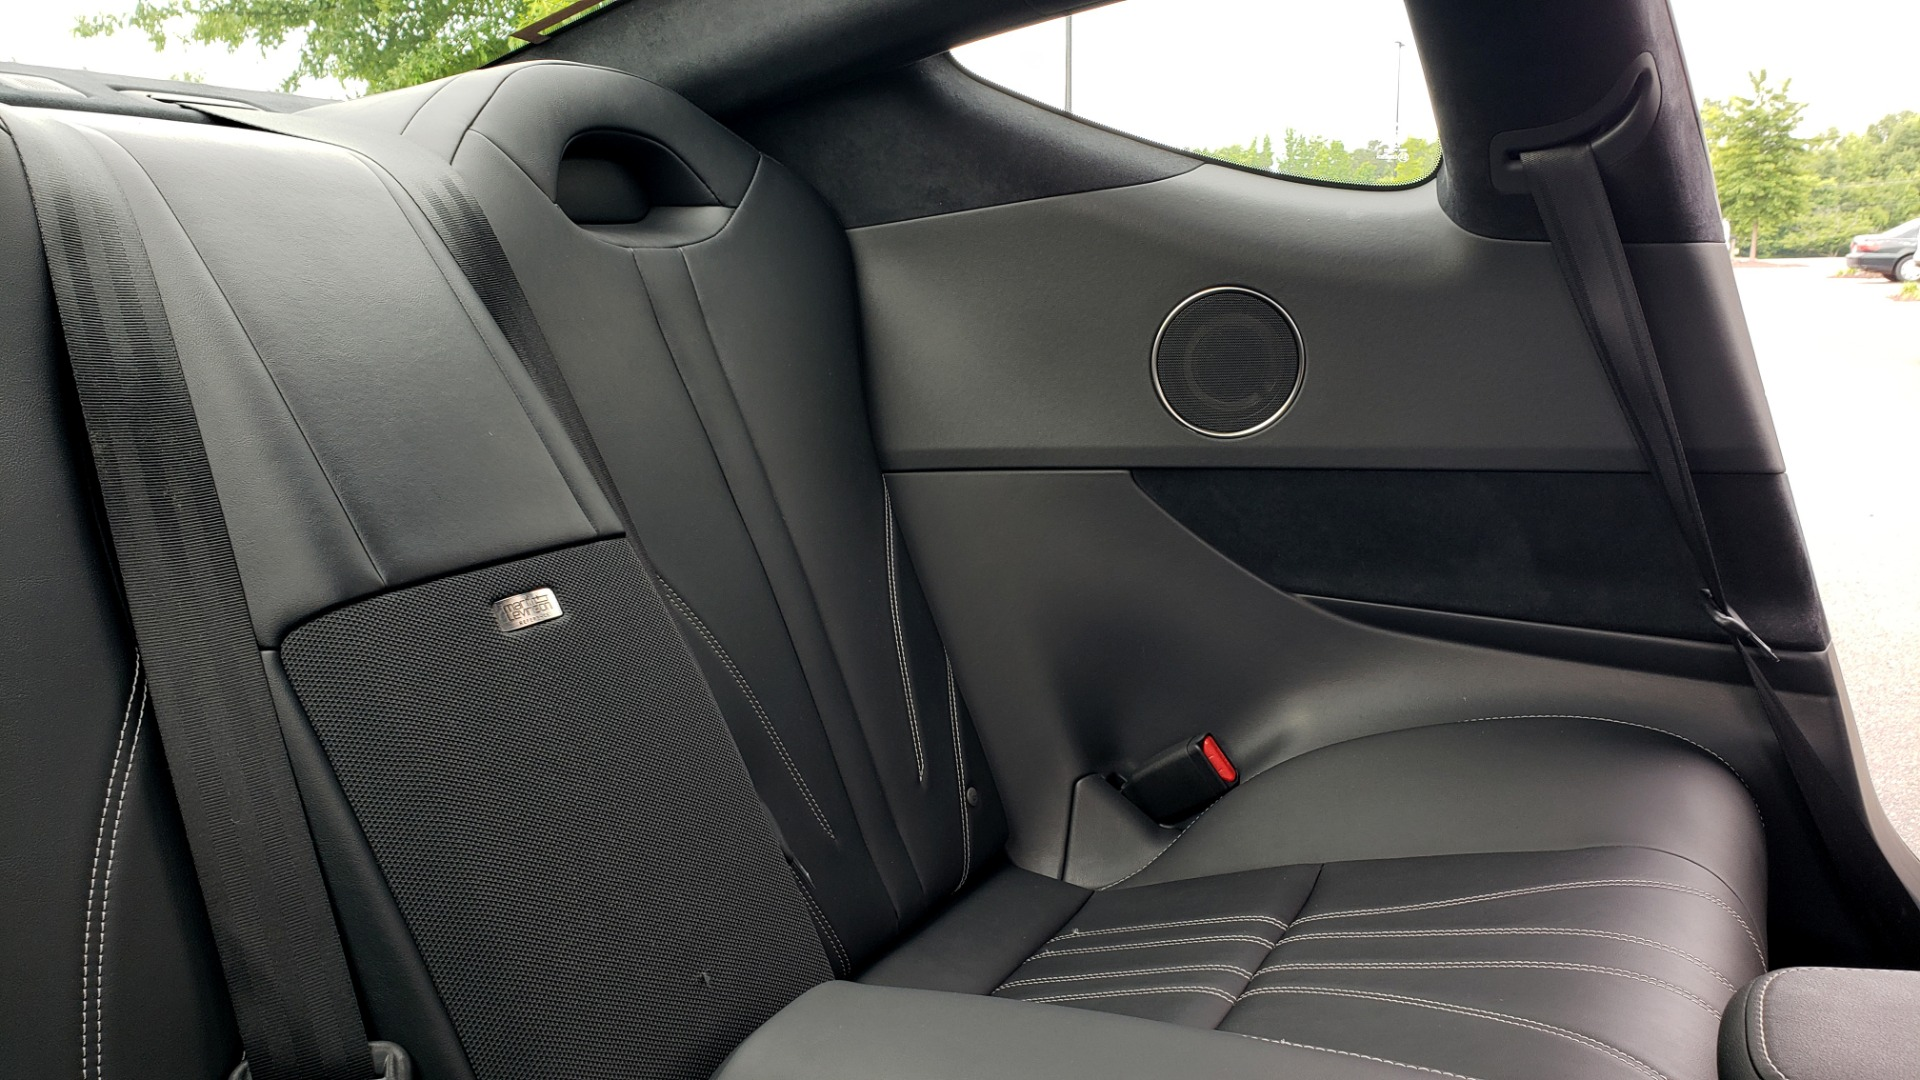 Used 2018 Lexus LC 500 COUPE / 5.0L V8 (471HP) / 10-SPD AUTO / HUD / SUNROOF / REARVIEW for sale Sold at Formula Imports in Charlotte NC 28227 52